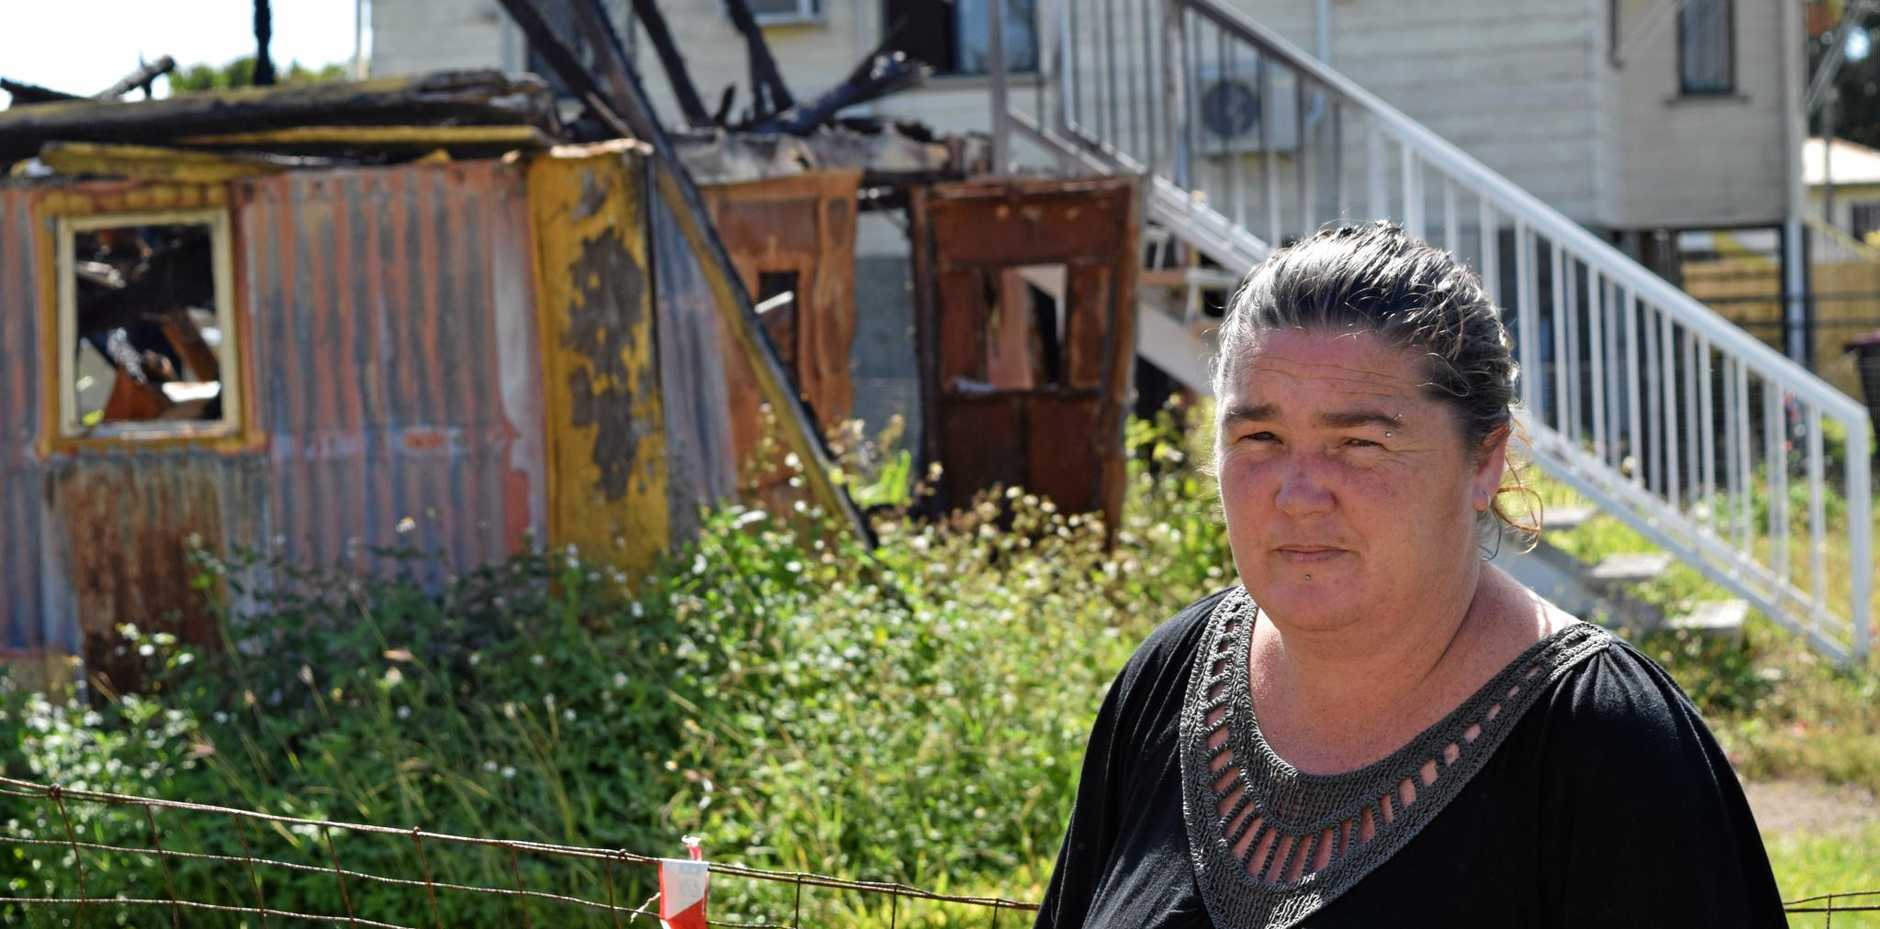 UNTOLD STORY: Lisa Pallister was set to move into 97 Broad St in Sarina before it went up in flames during Cyclone Debbie.